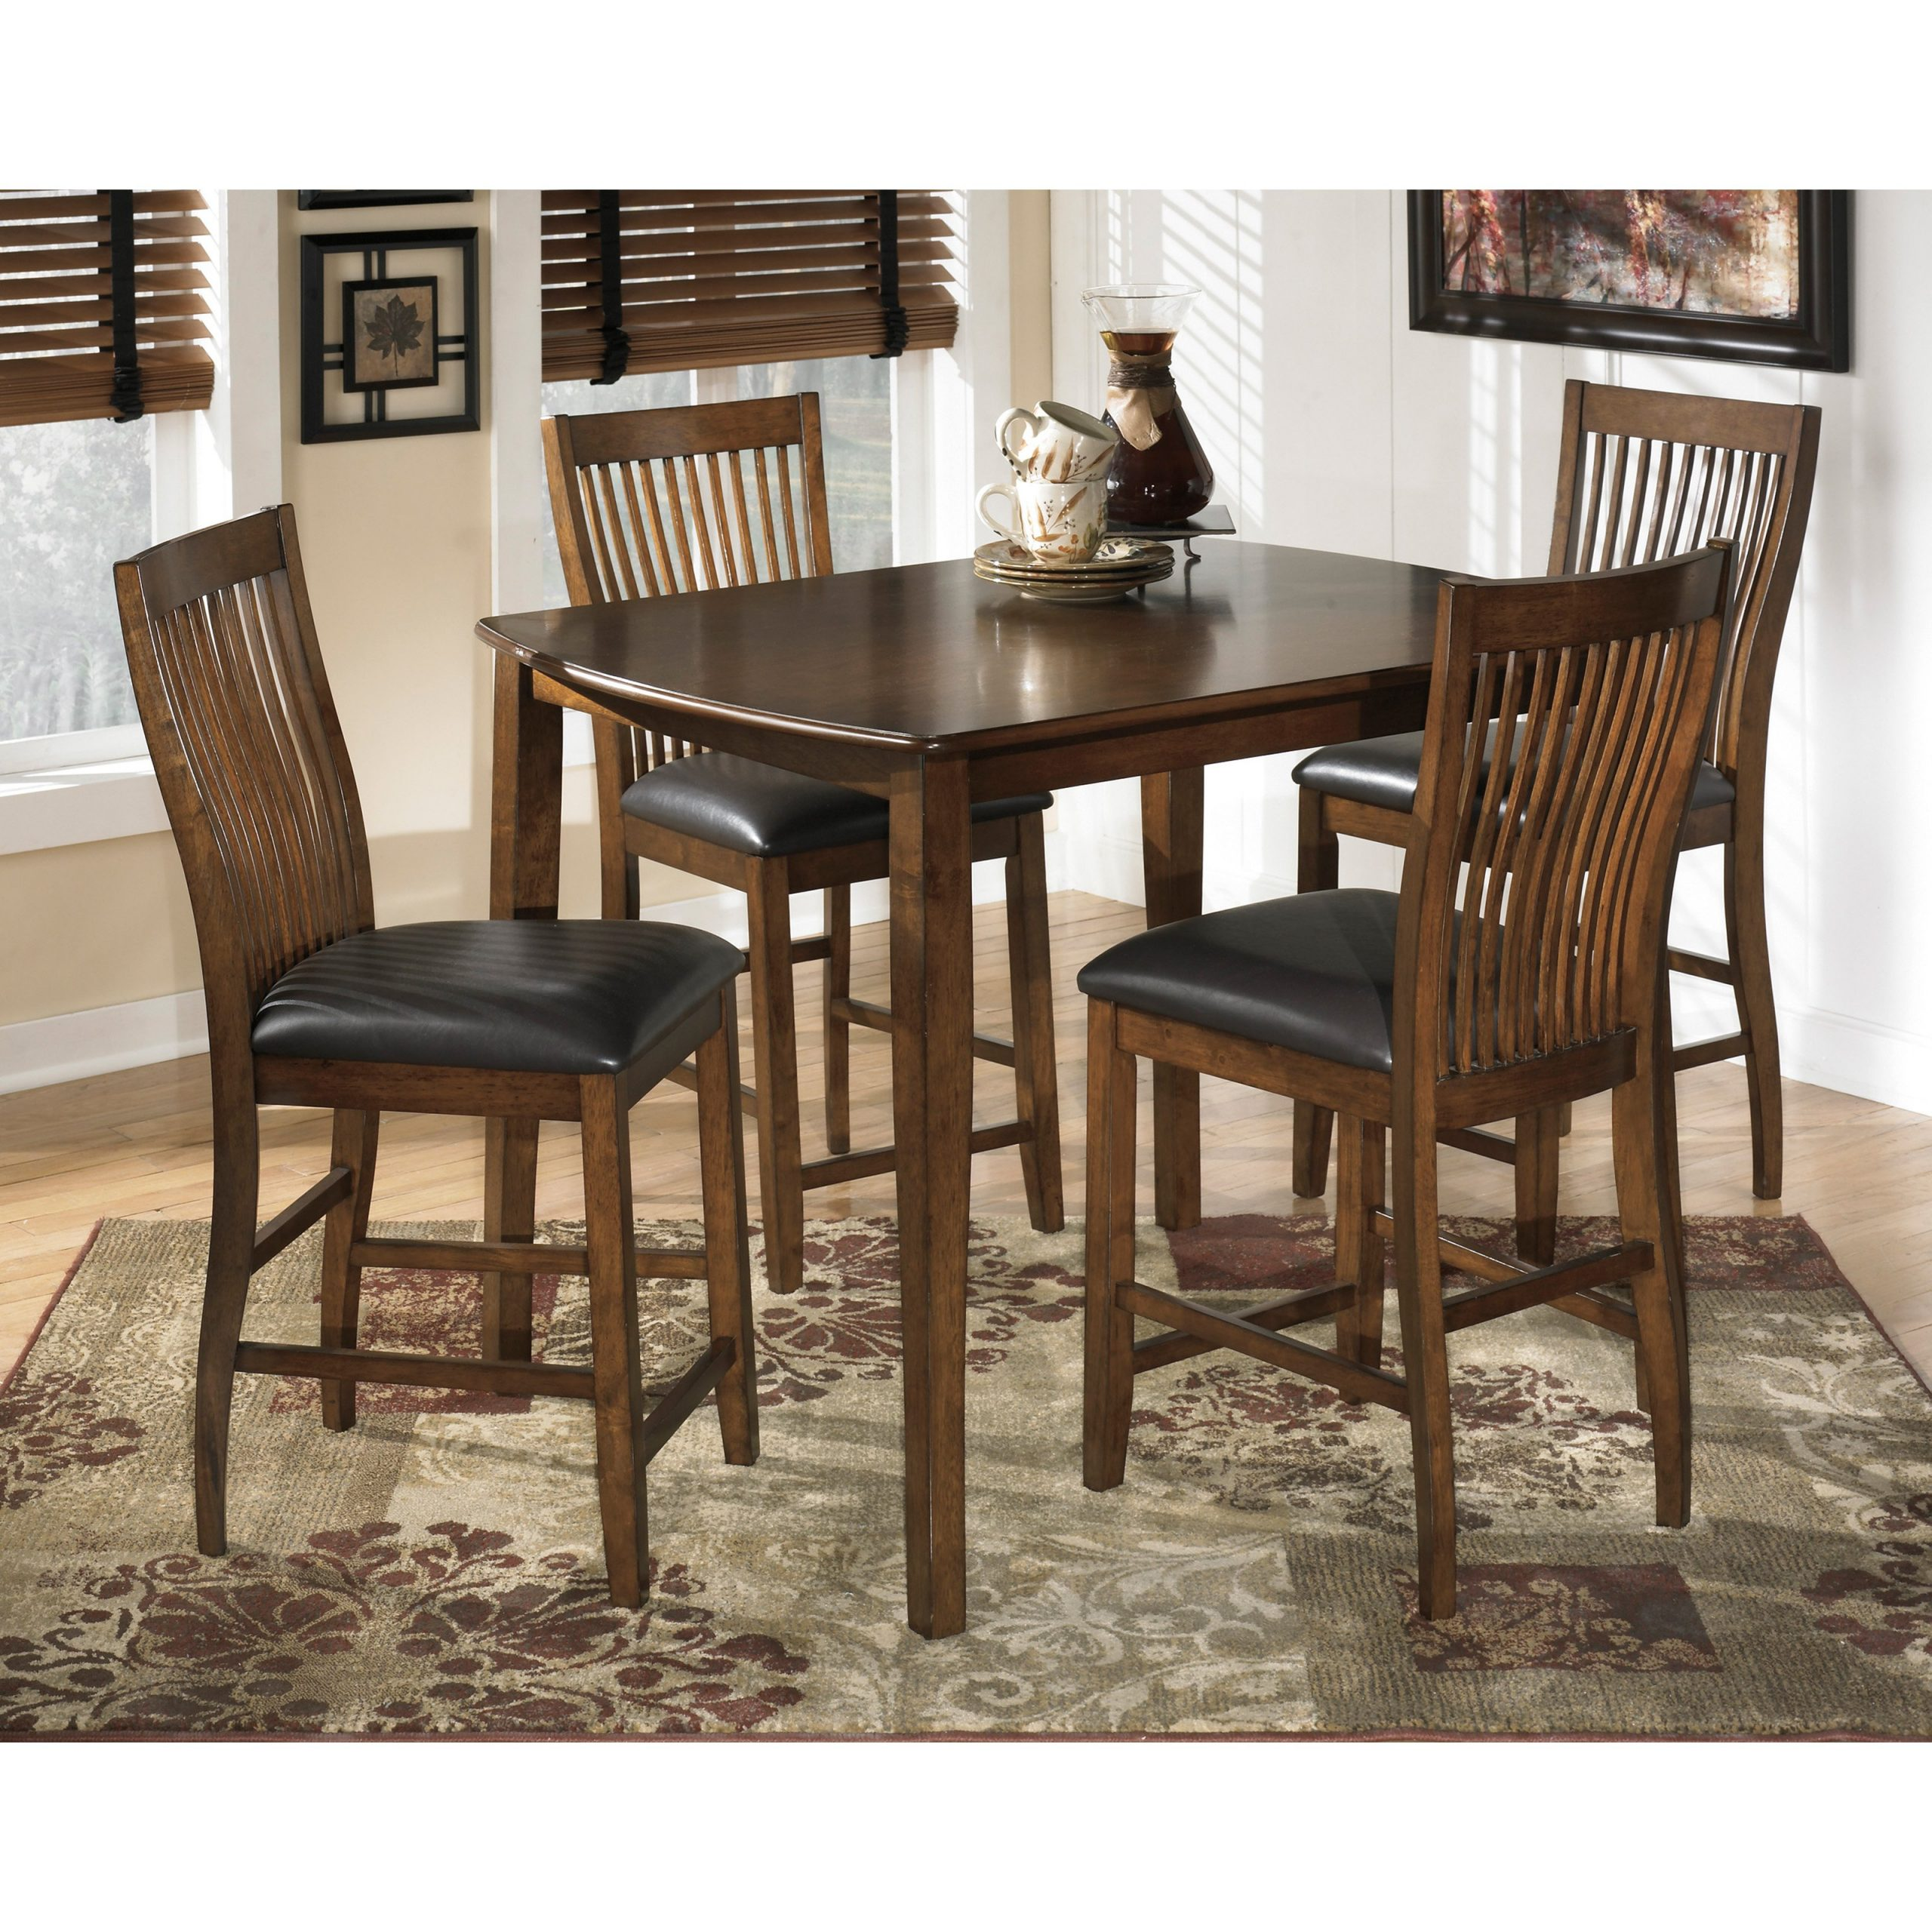 Signature Designashley Stuman 5 Piece Rectangular Pertaining To Most Current Desloge Counter Height Trestle Dining Tables (View 9 of 15)